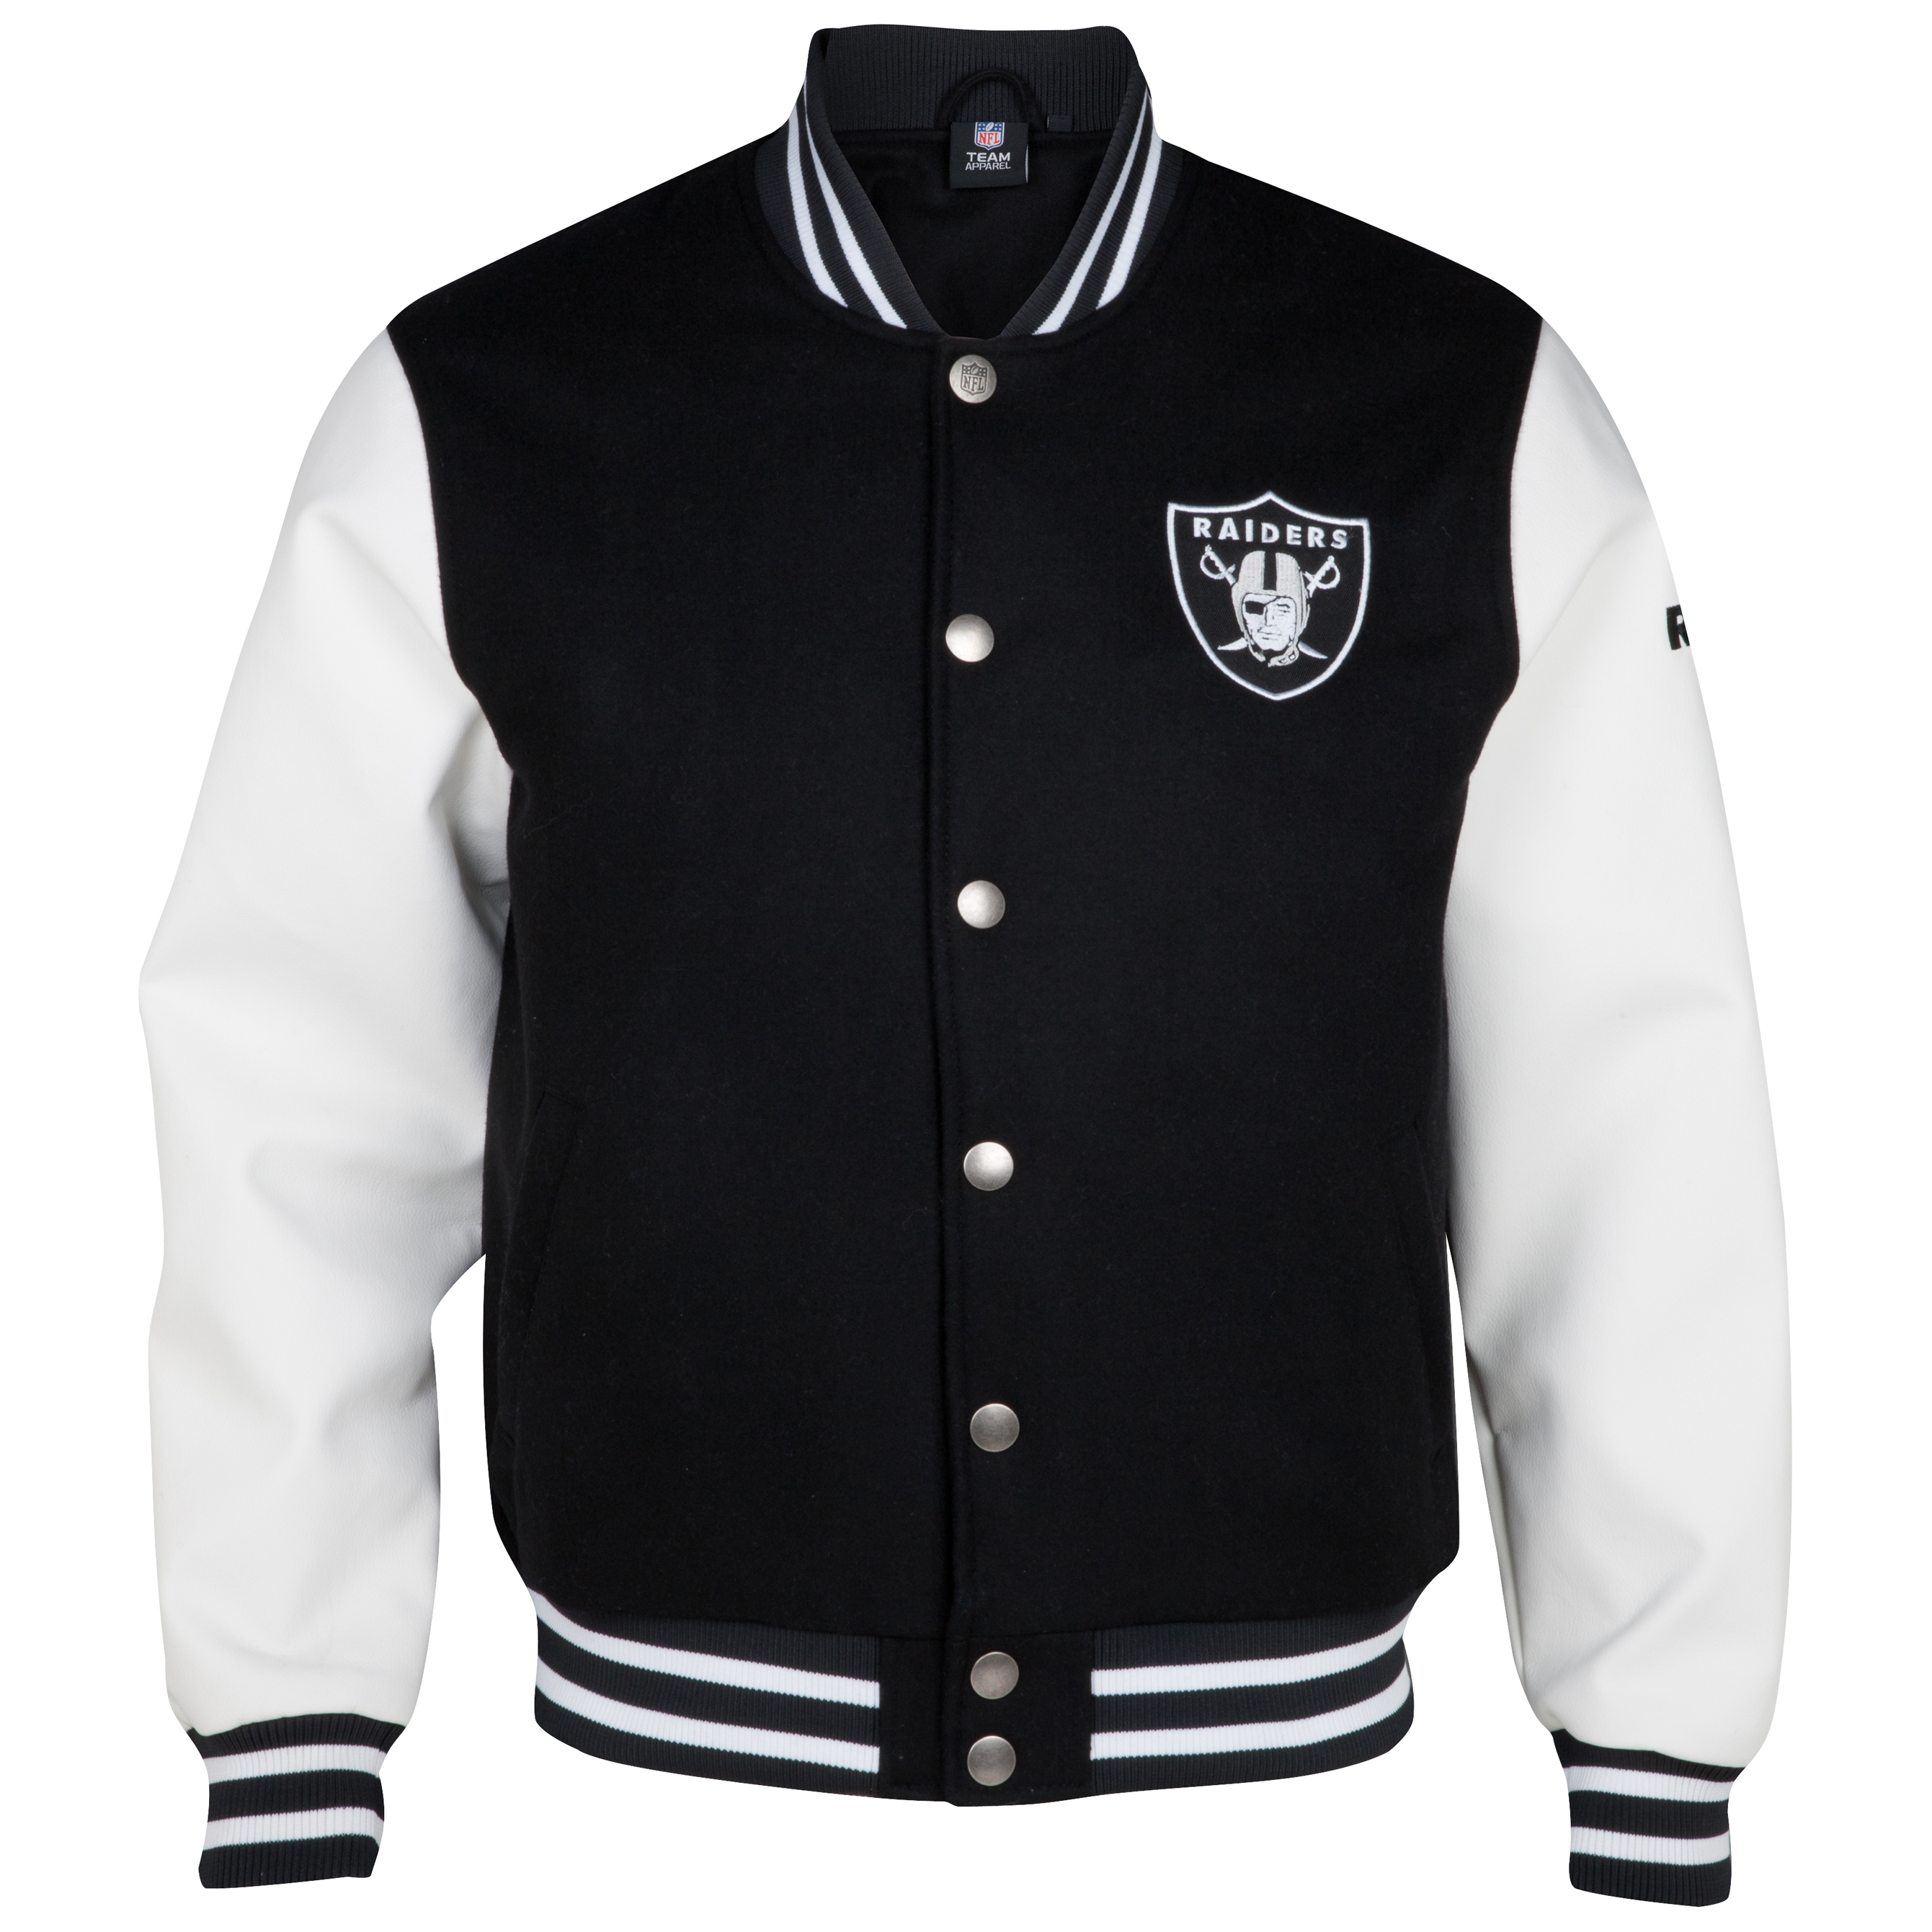 Oakland Raiders Balfour Letterman Jacket